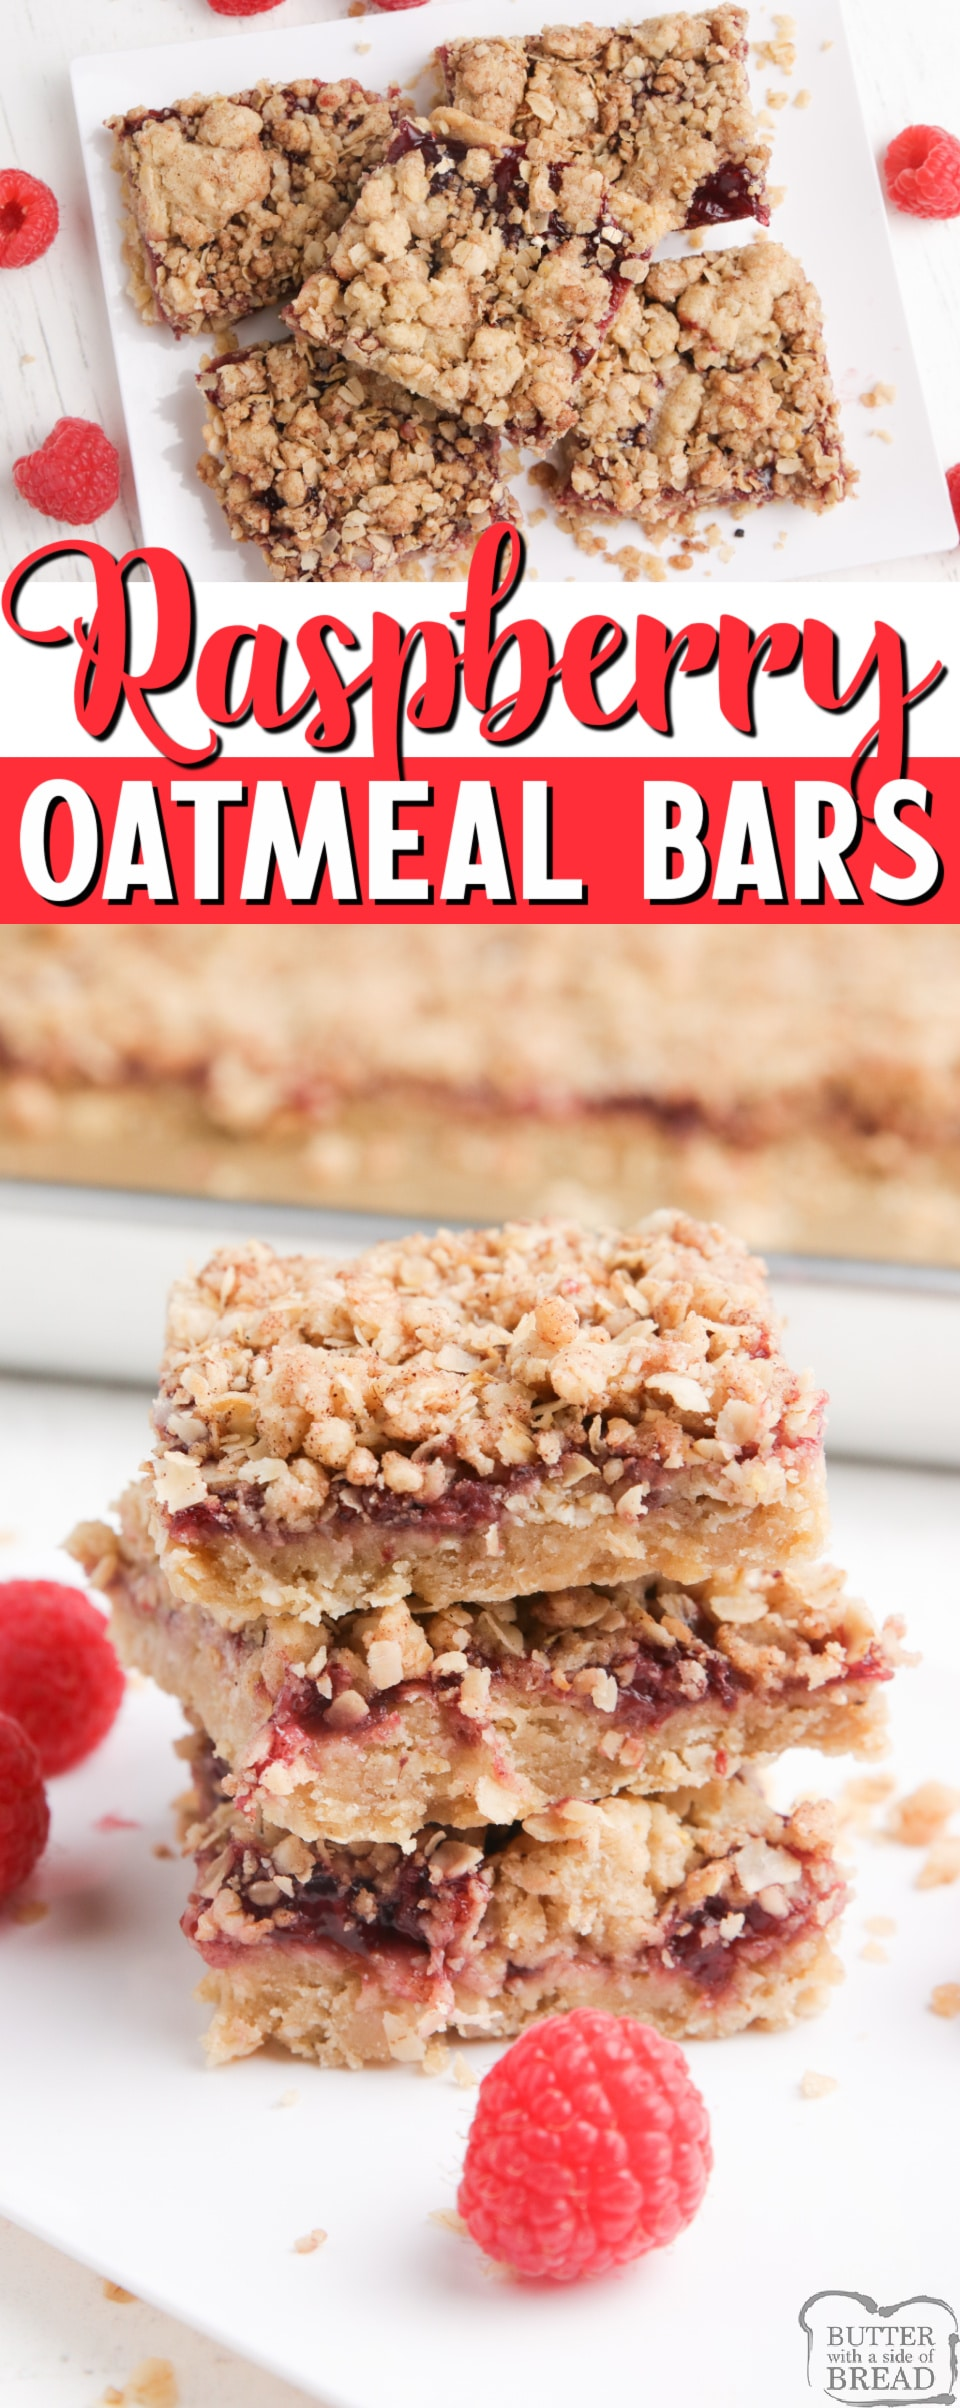 Raspberry Oatmeal Bars made with raspberry pie filling sandwiched between two delicious oatmeal cookie layers. Only 7 ingredients needed for this simple oatmeal bar recipe.